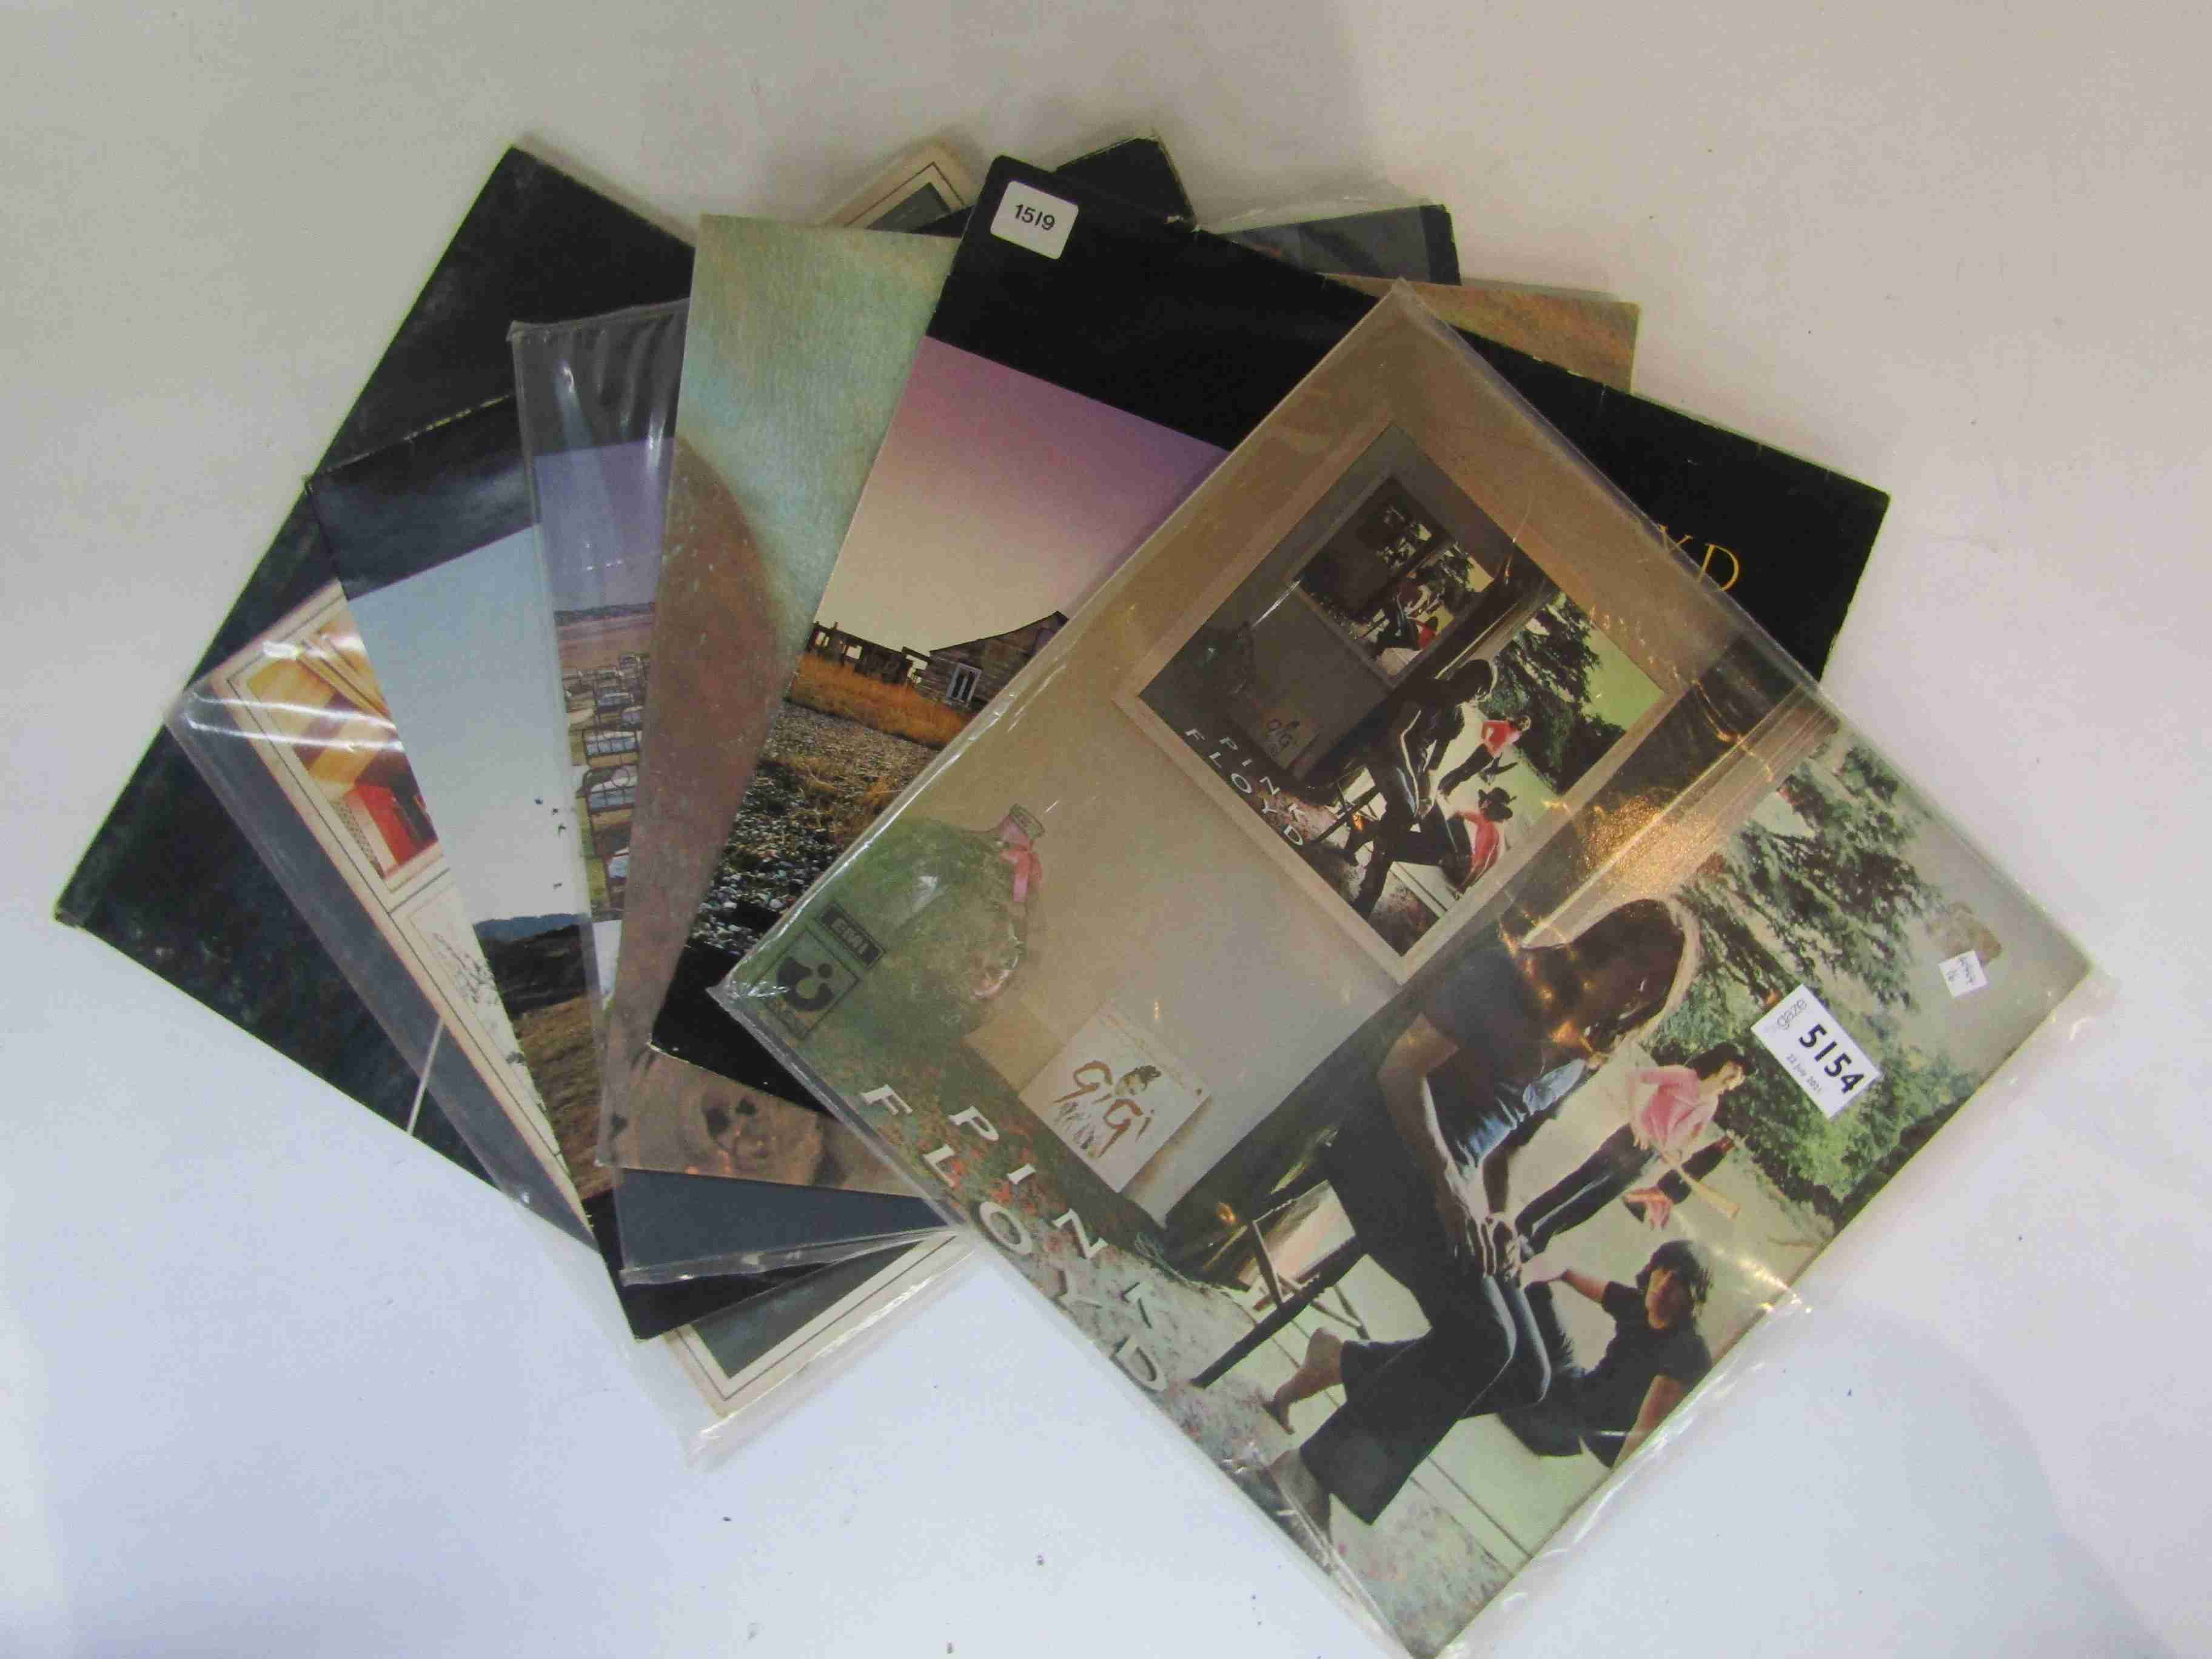 PINK FLOYD: Assorted LP's including 'Dark Side Of the Moon', 'A Nice Pair',